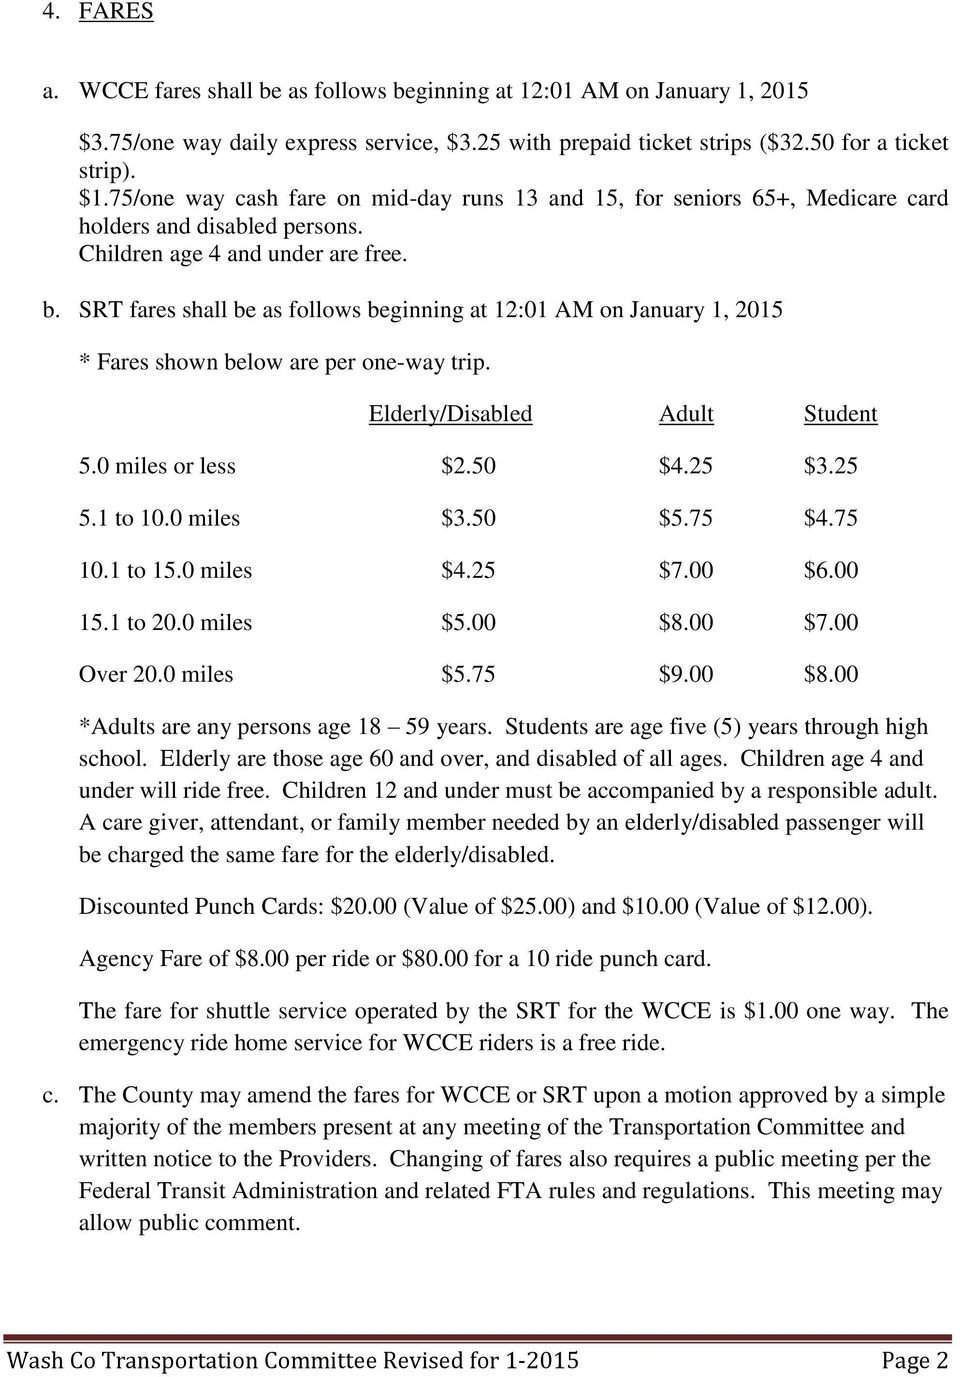 SRT fares shall be as follows beginning at 12:01 AM on January 1, 2015 * Fares shown below are per one-way trip. Elderly/Disabled Adult Student 5.0 miles or less $2.50 $4.25 $3.25 5.1 to 10.